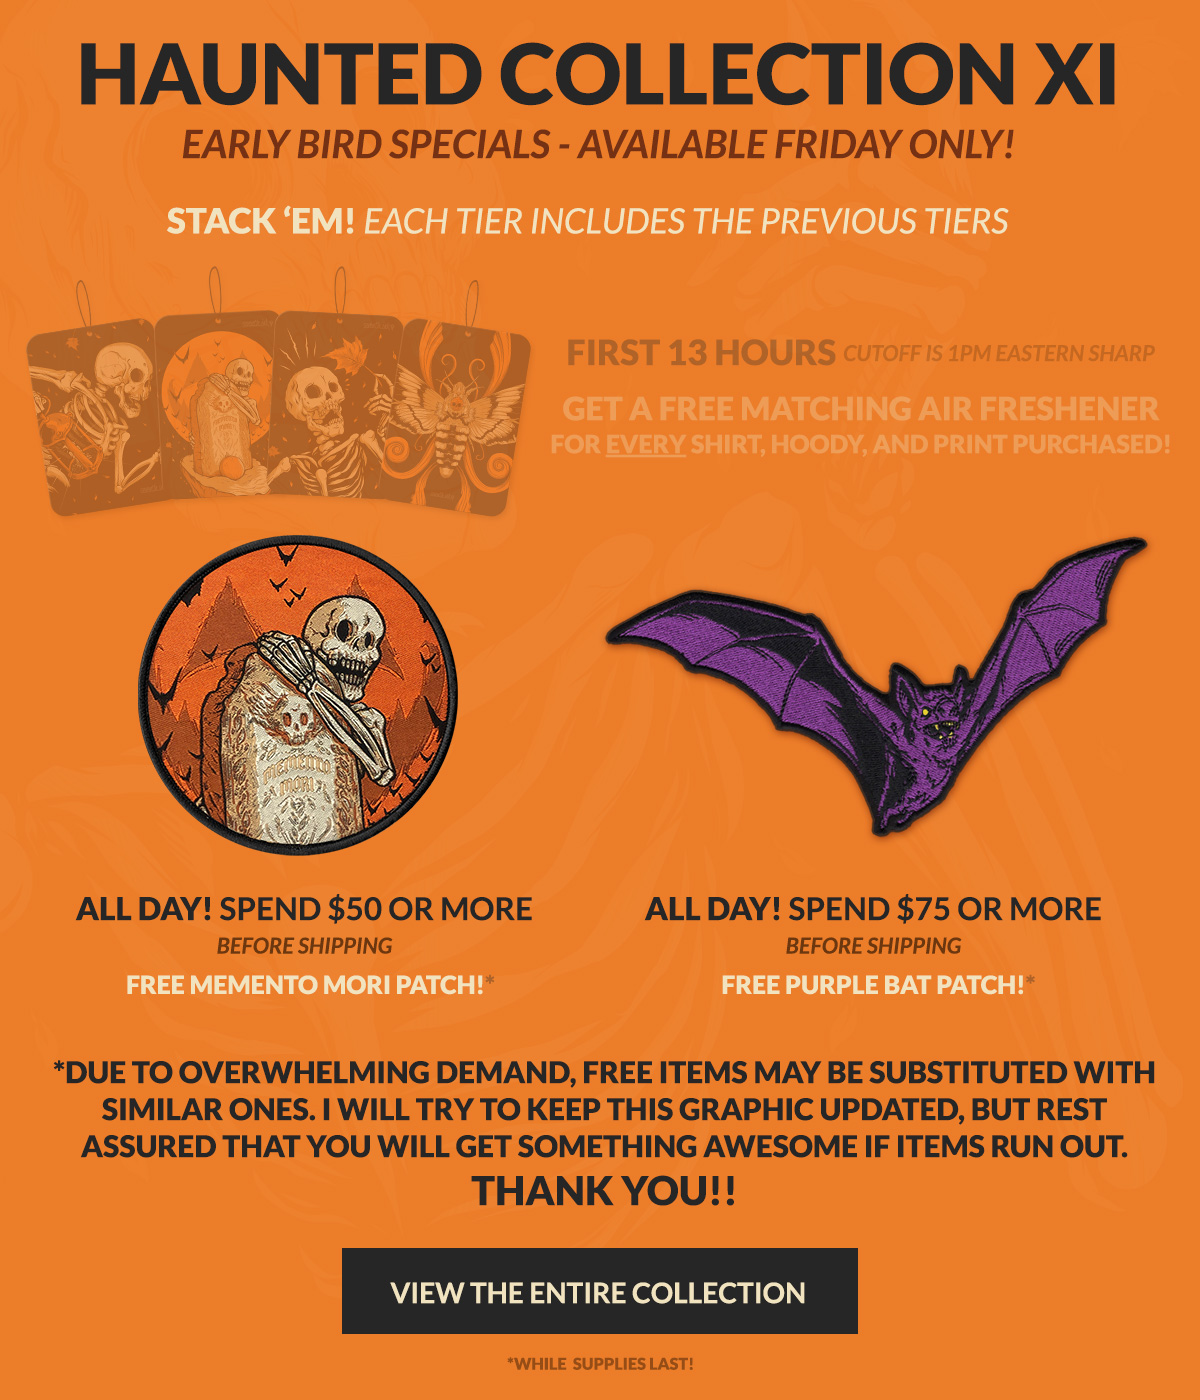 Haunted Collection XI Early Bird Specials